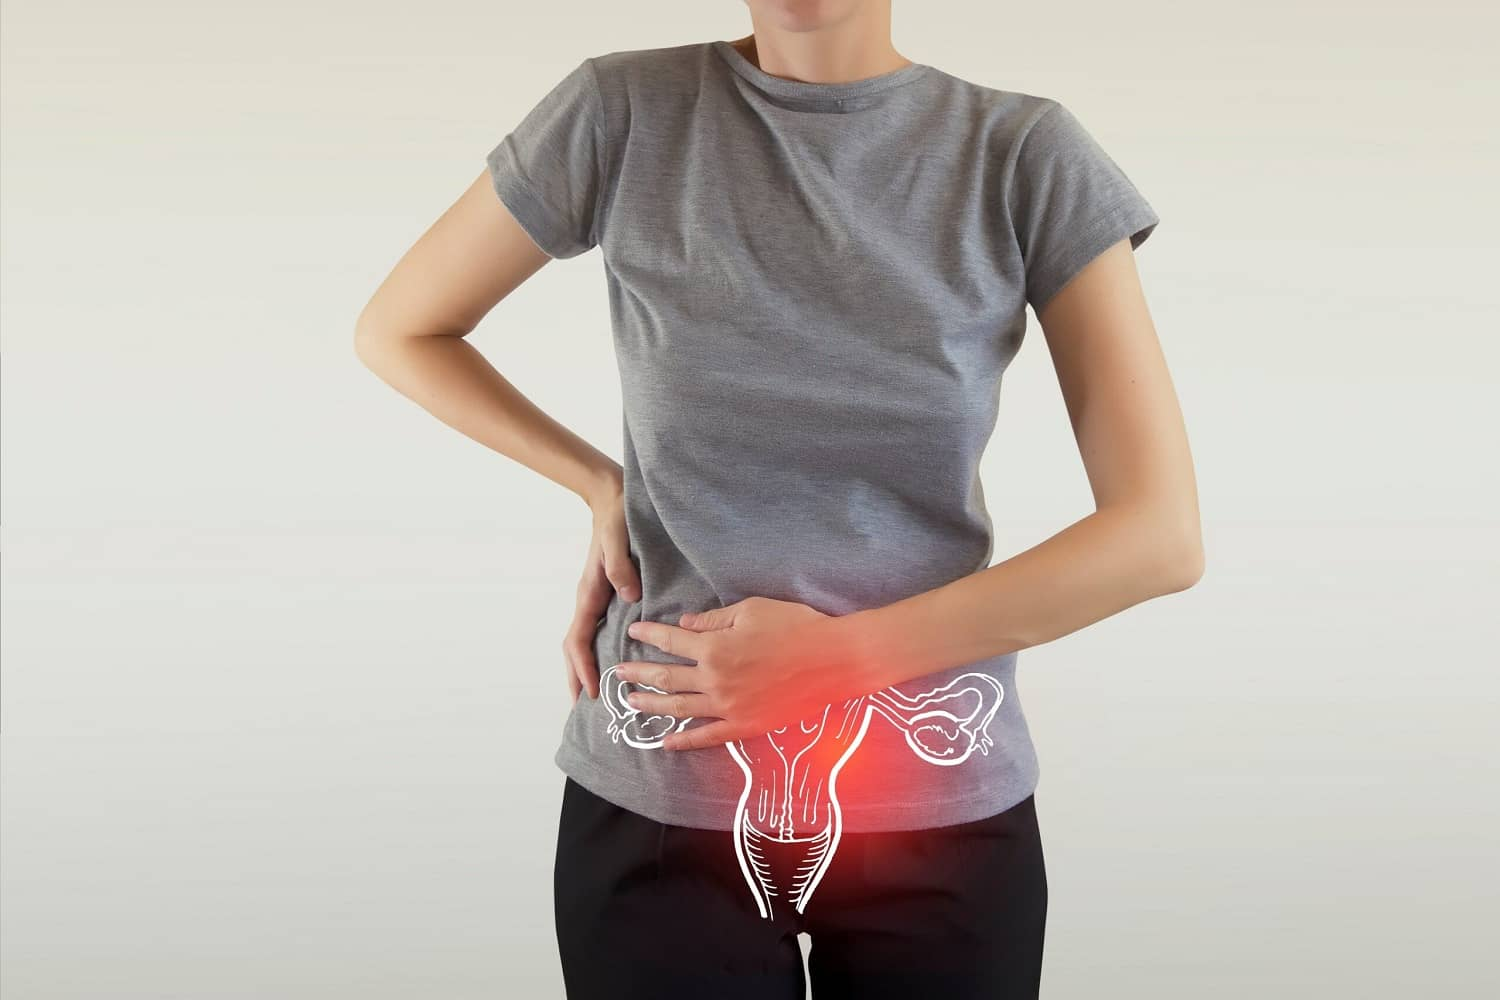 A Primer on Chronic Pelvic Pain